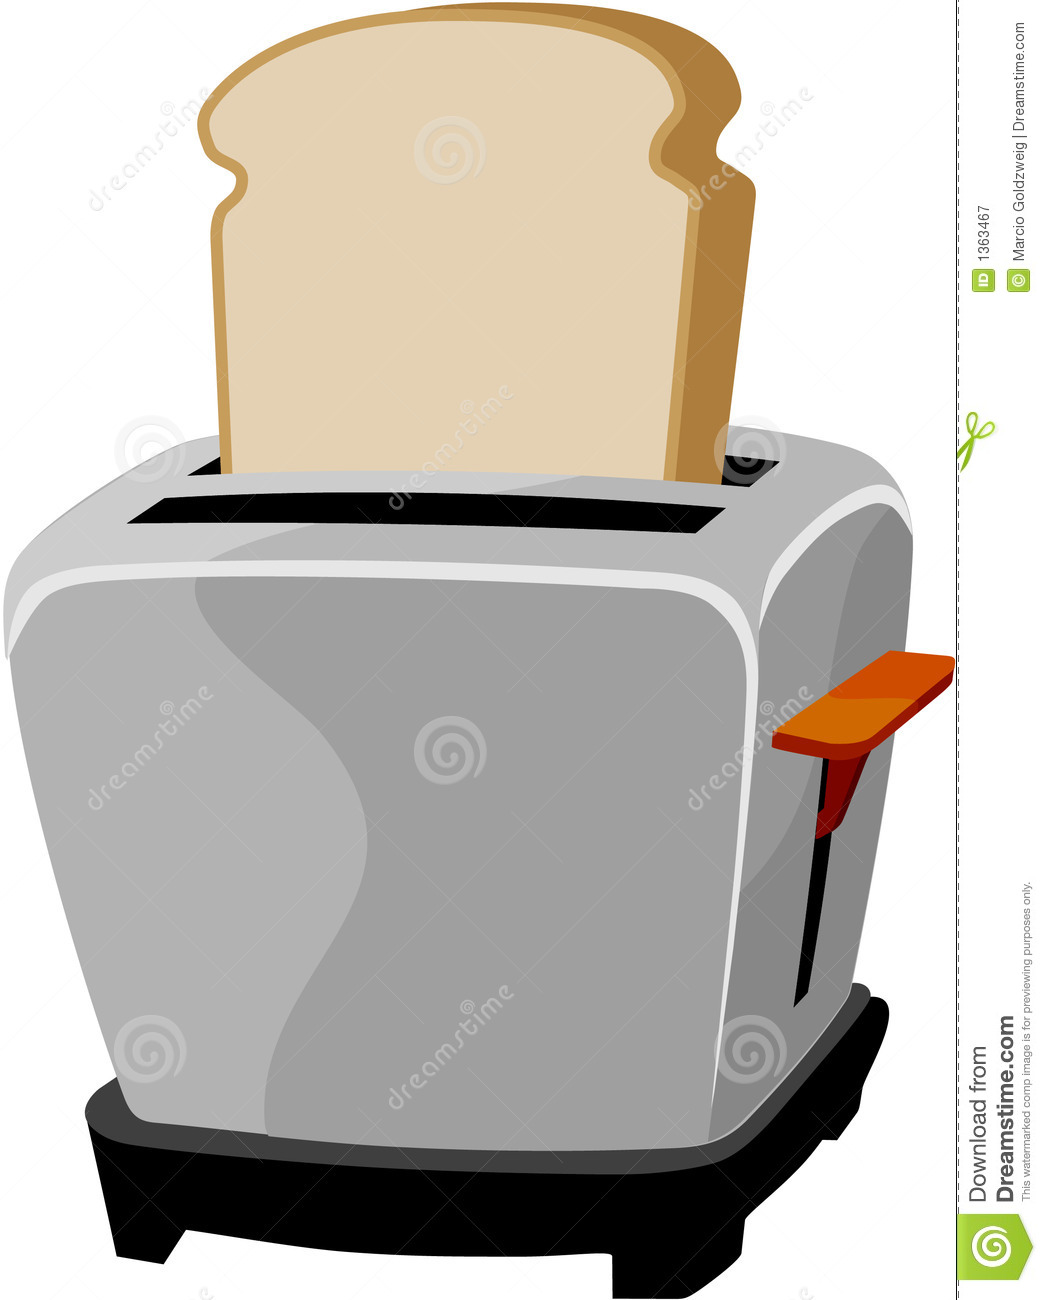 Toaster Clip Art ~ Toaster royalty free stock photography image